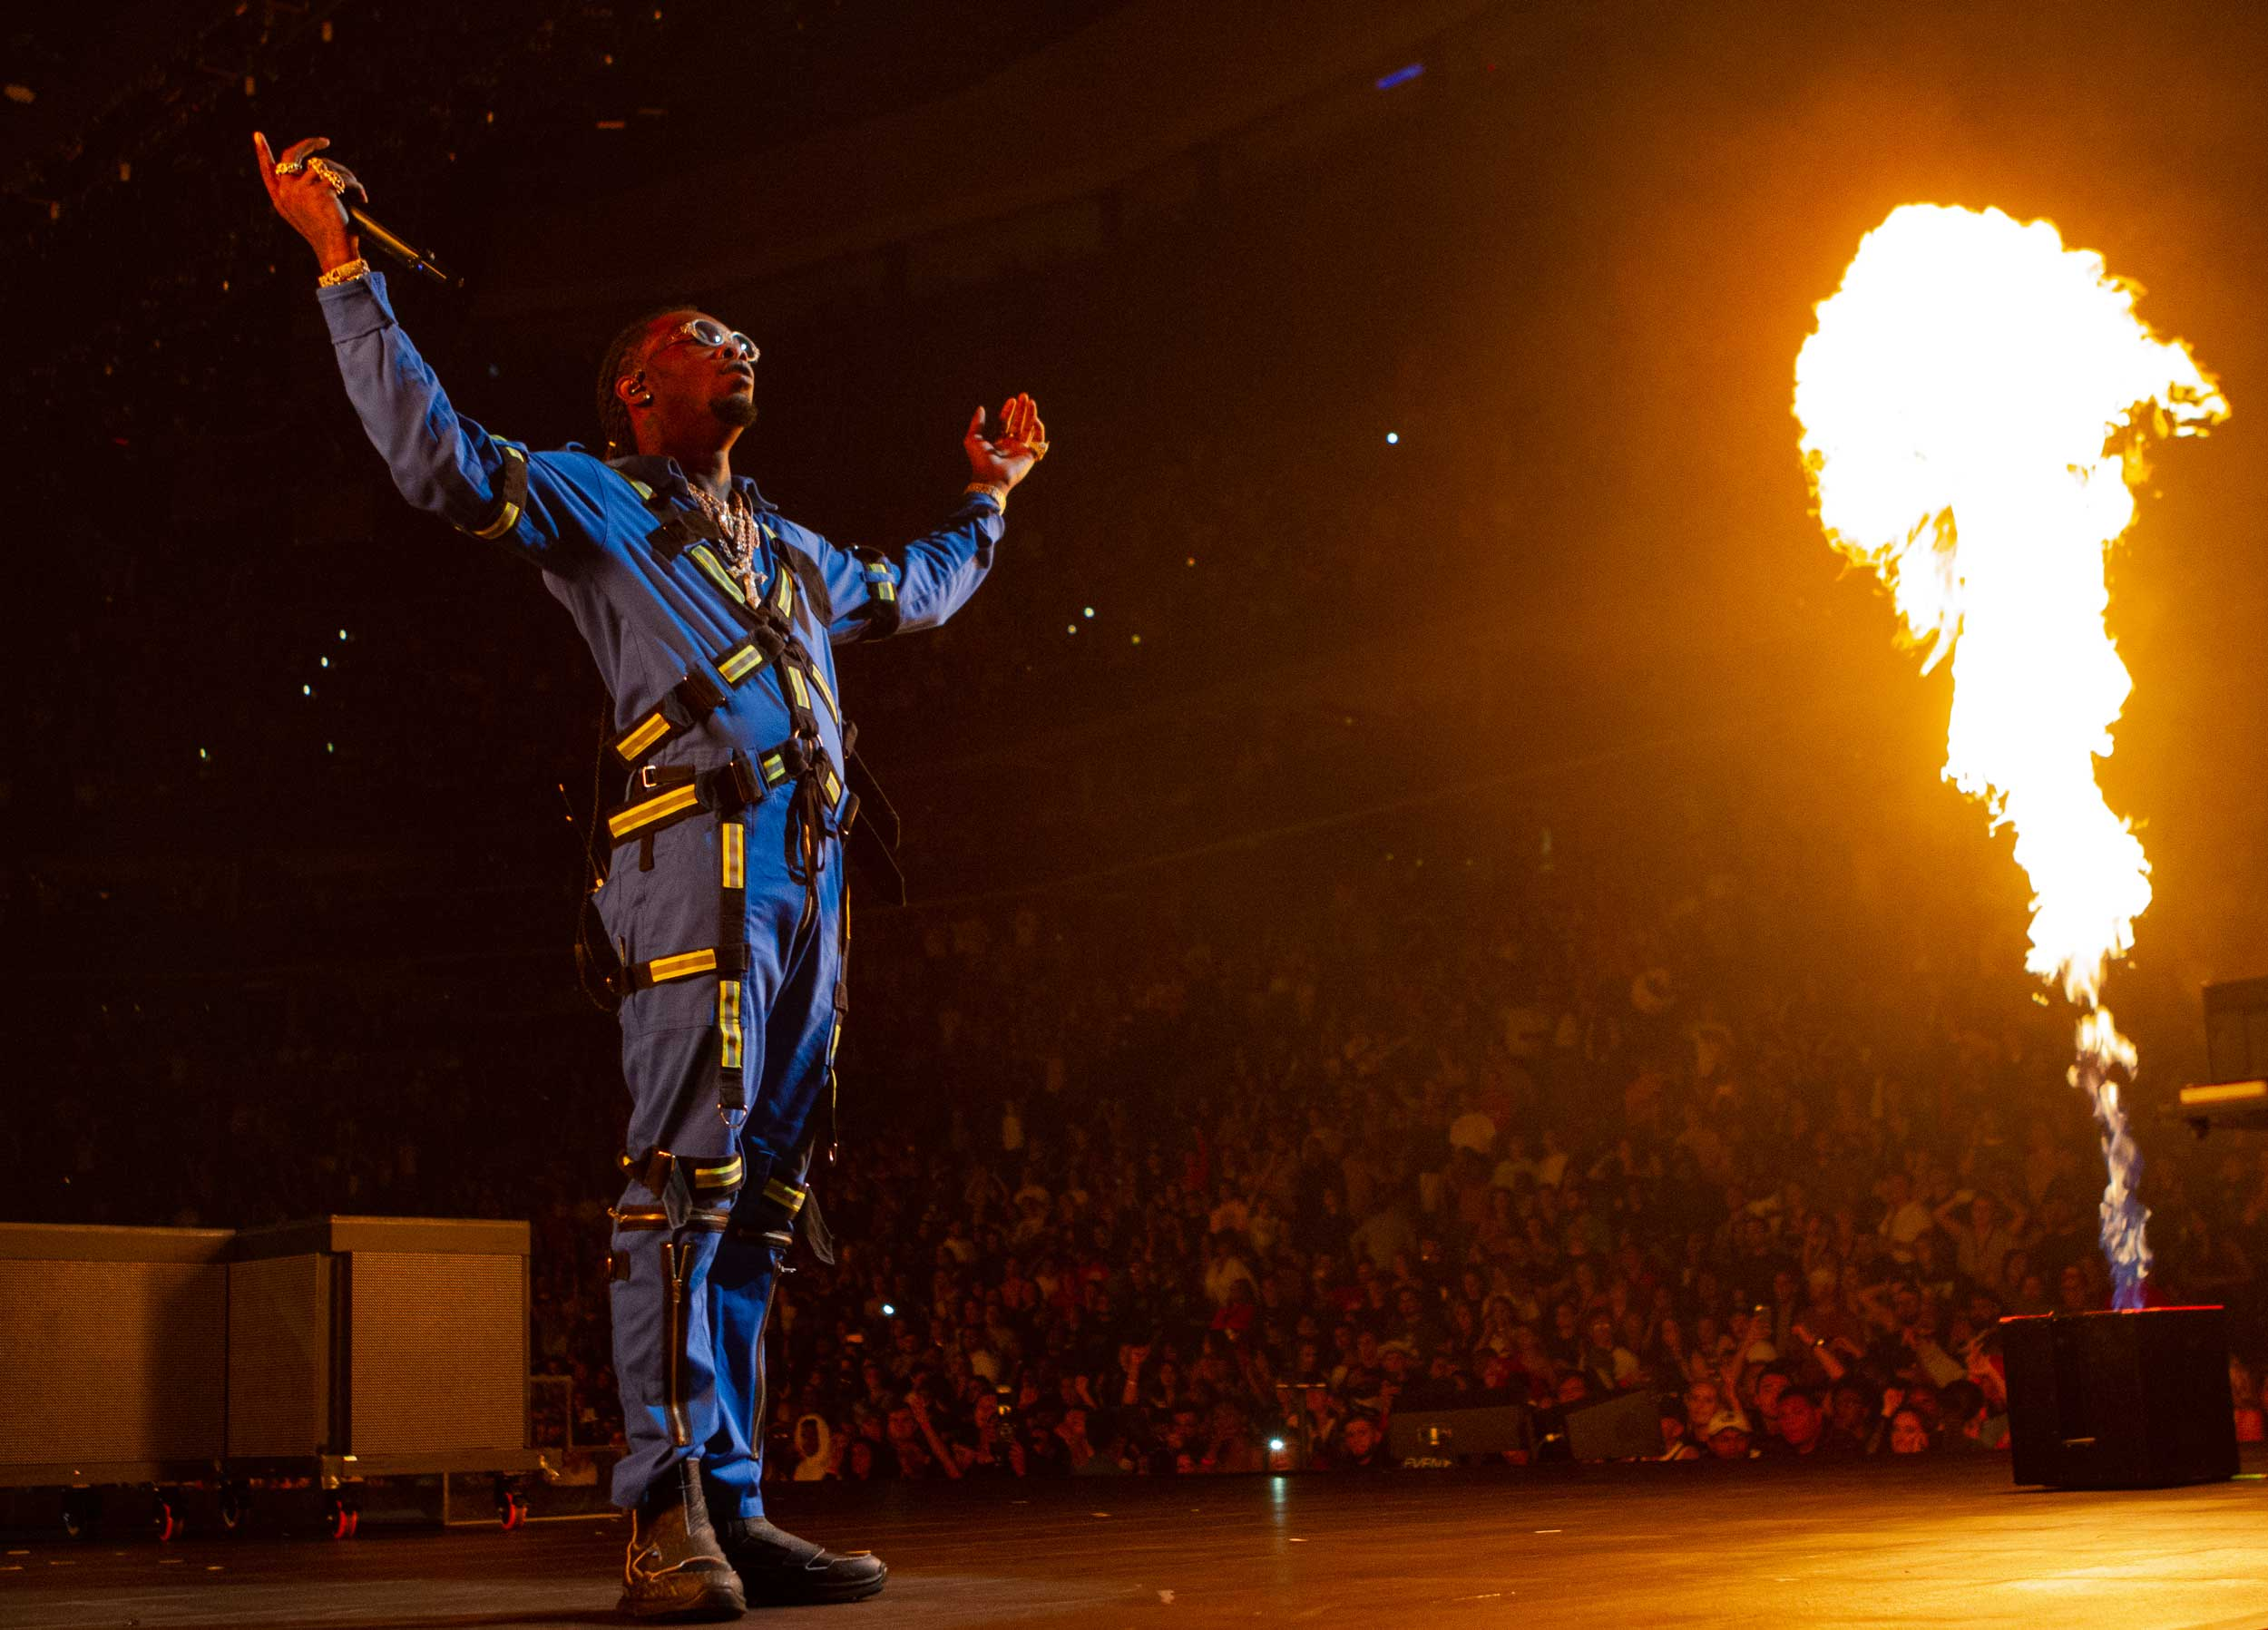 Offset on stage with fire